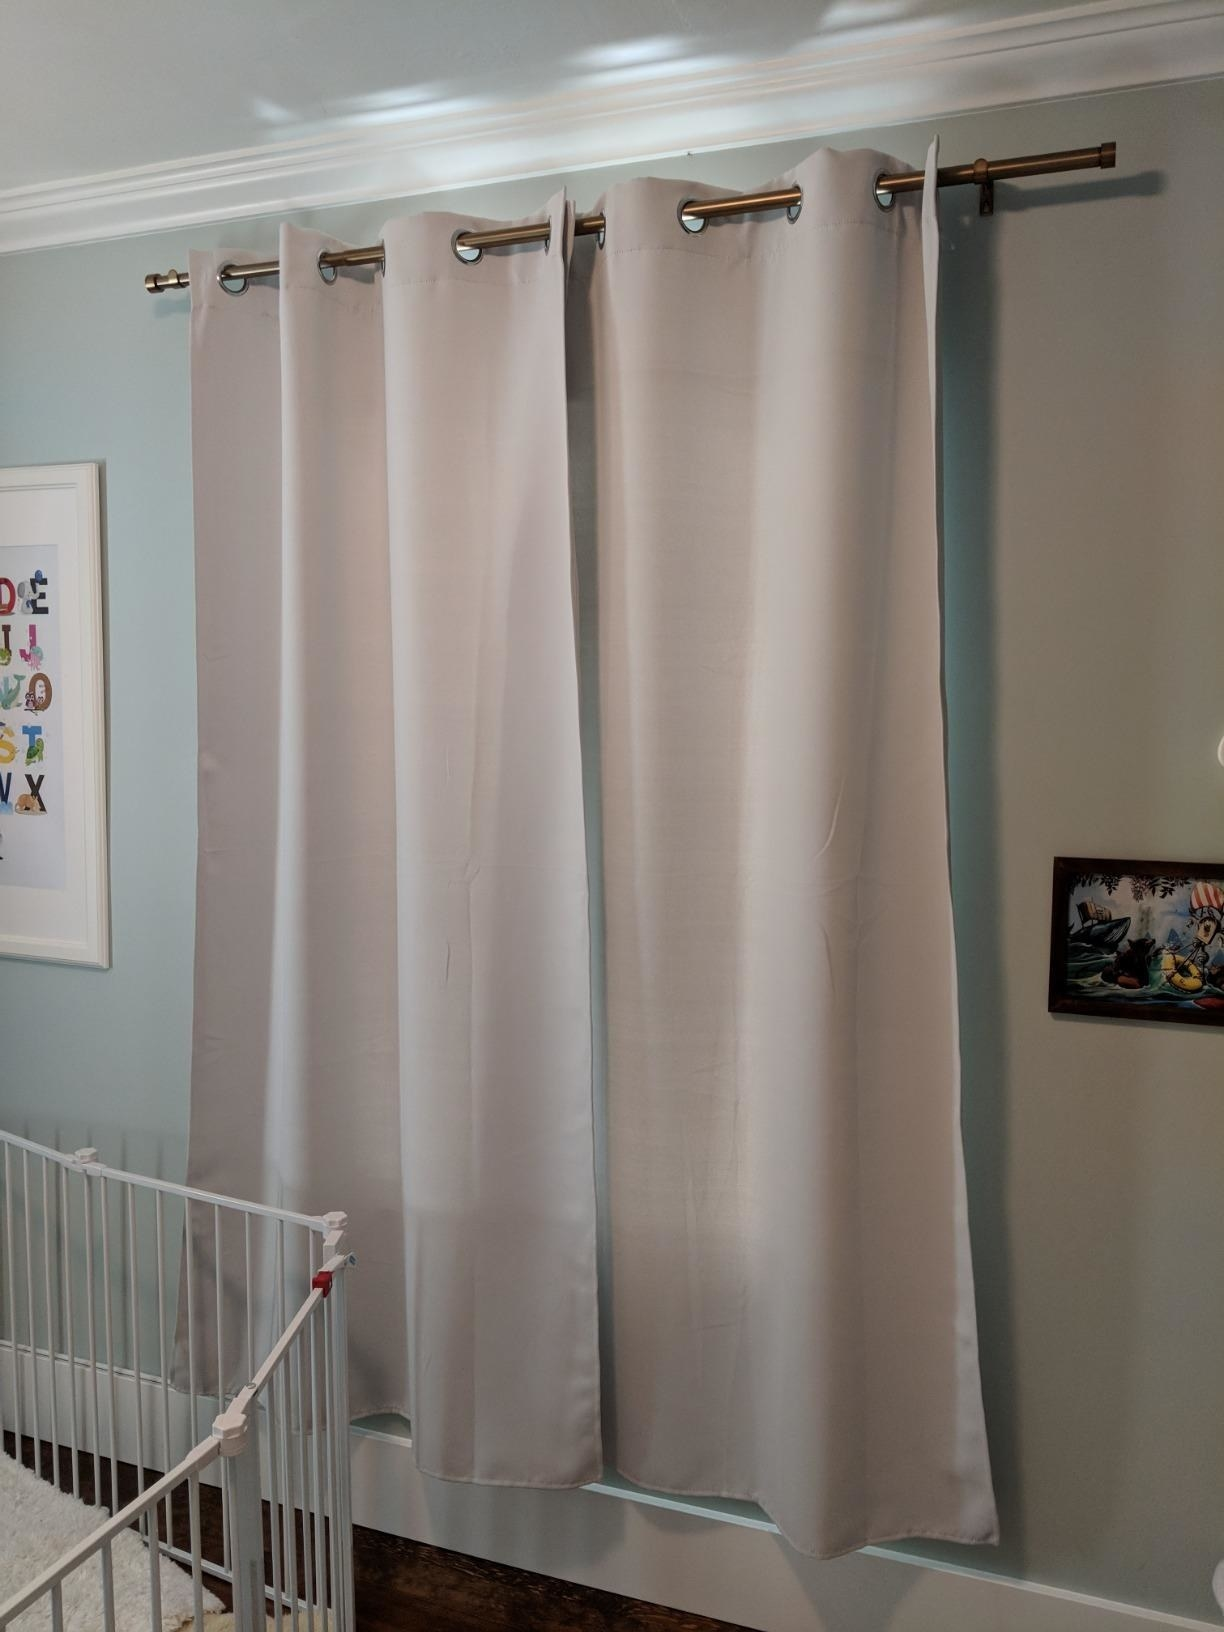 A reviewer showing the curtains over a window